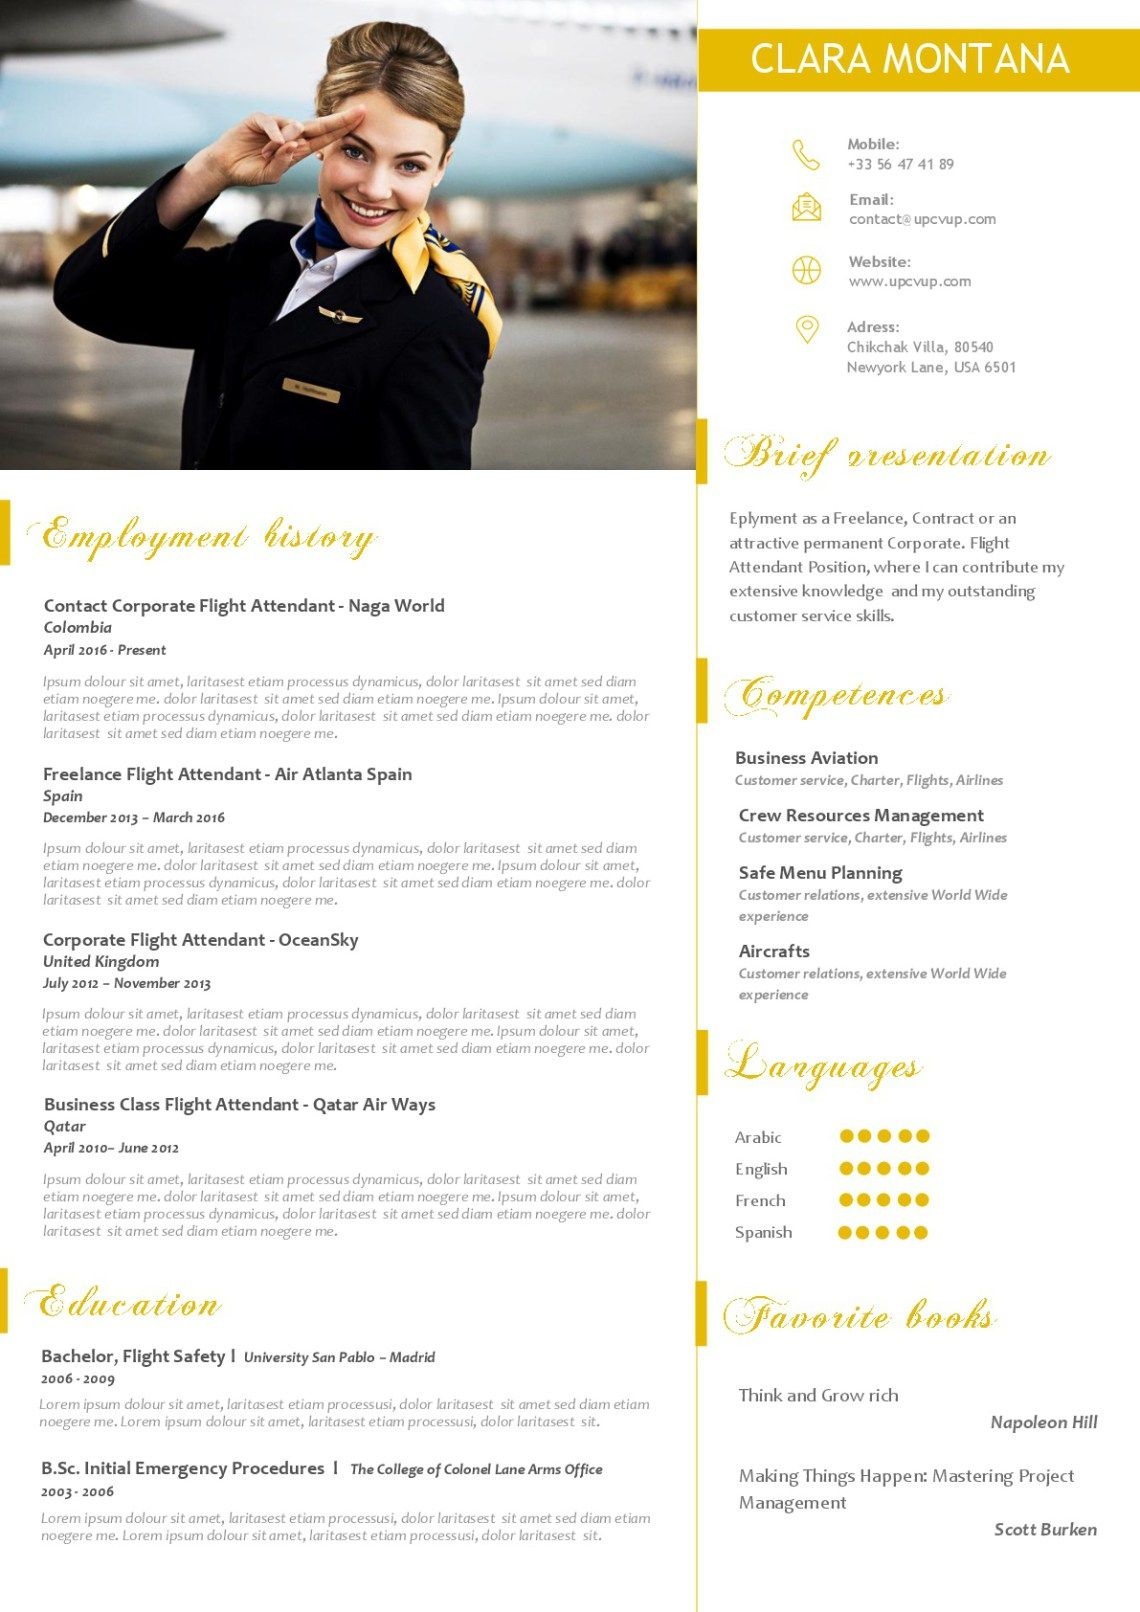 Flight Attendant Resume Samples Cover Letter Example For Emirates Cabin Crew Templates